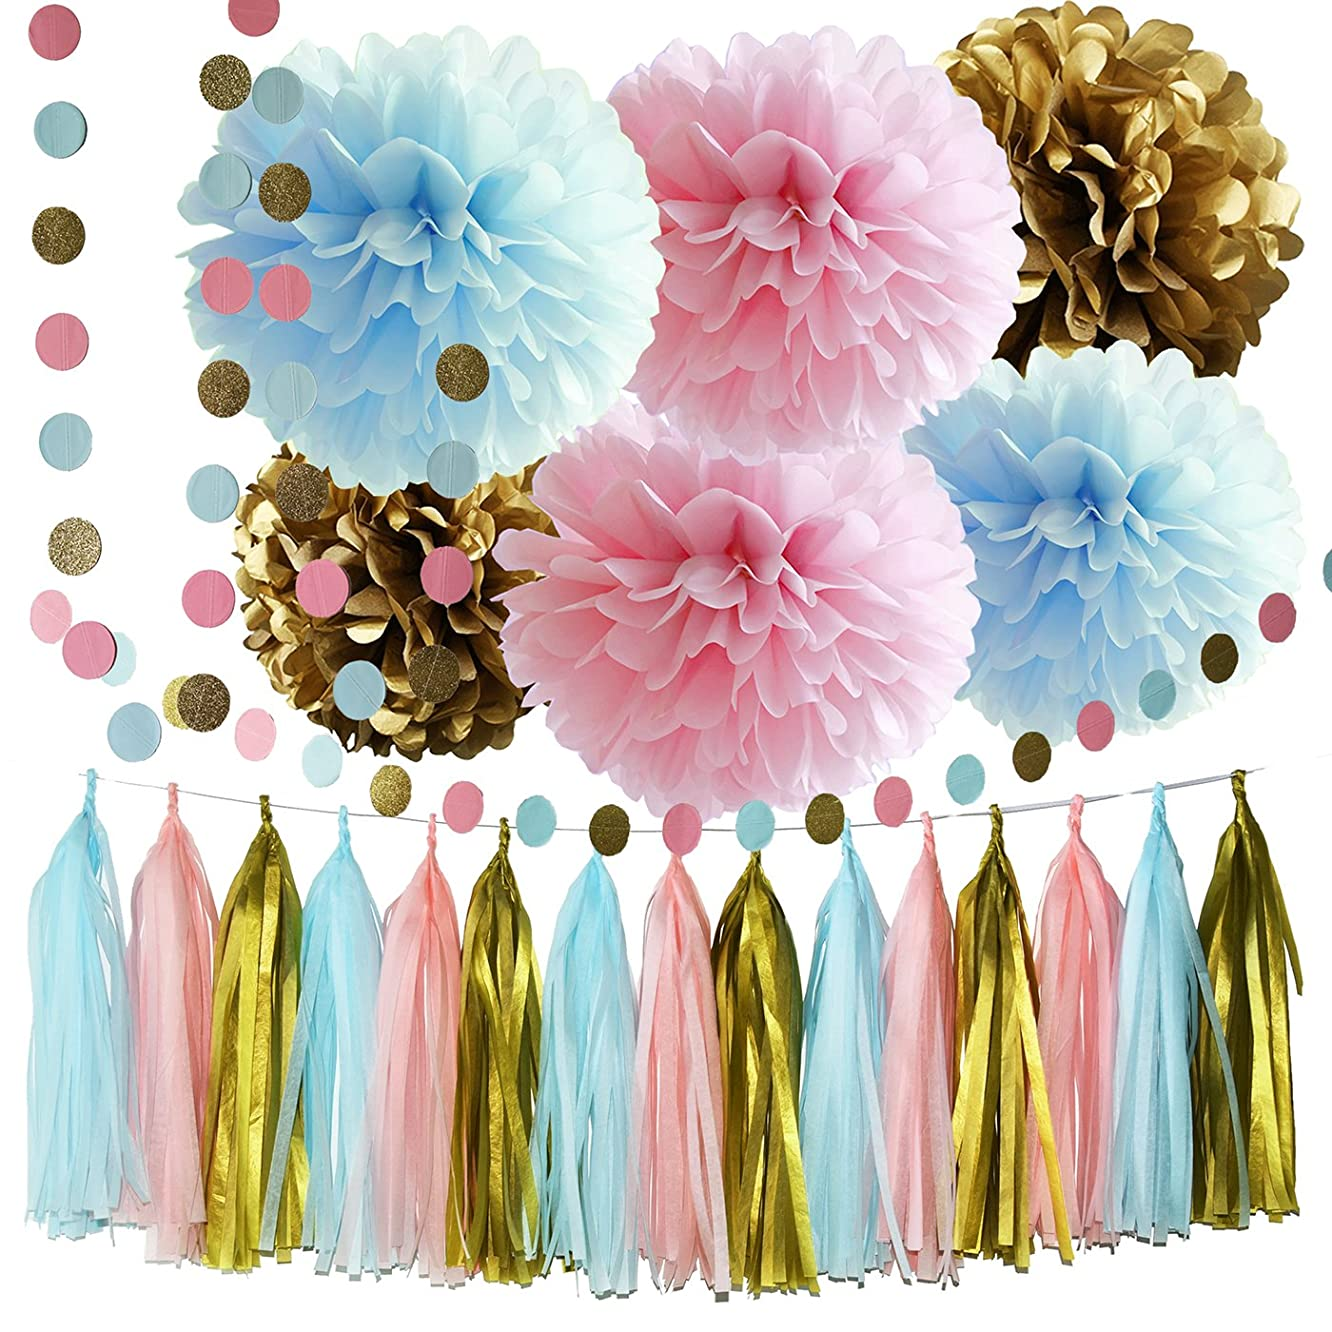 Gender Reveal Party Supplies Boy or Girl Baby Shower Decorations Pink Blue Gold Tissue Paper Pom Pom Circle Garland Tassel Garland Gender Reveal Party Decorations